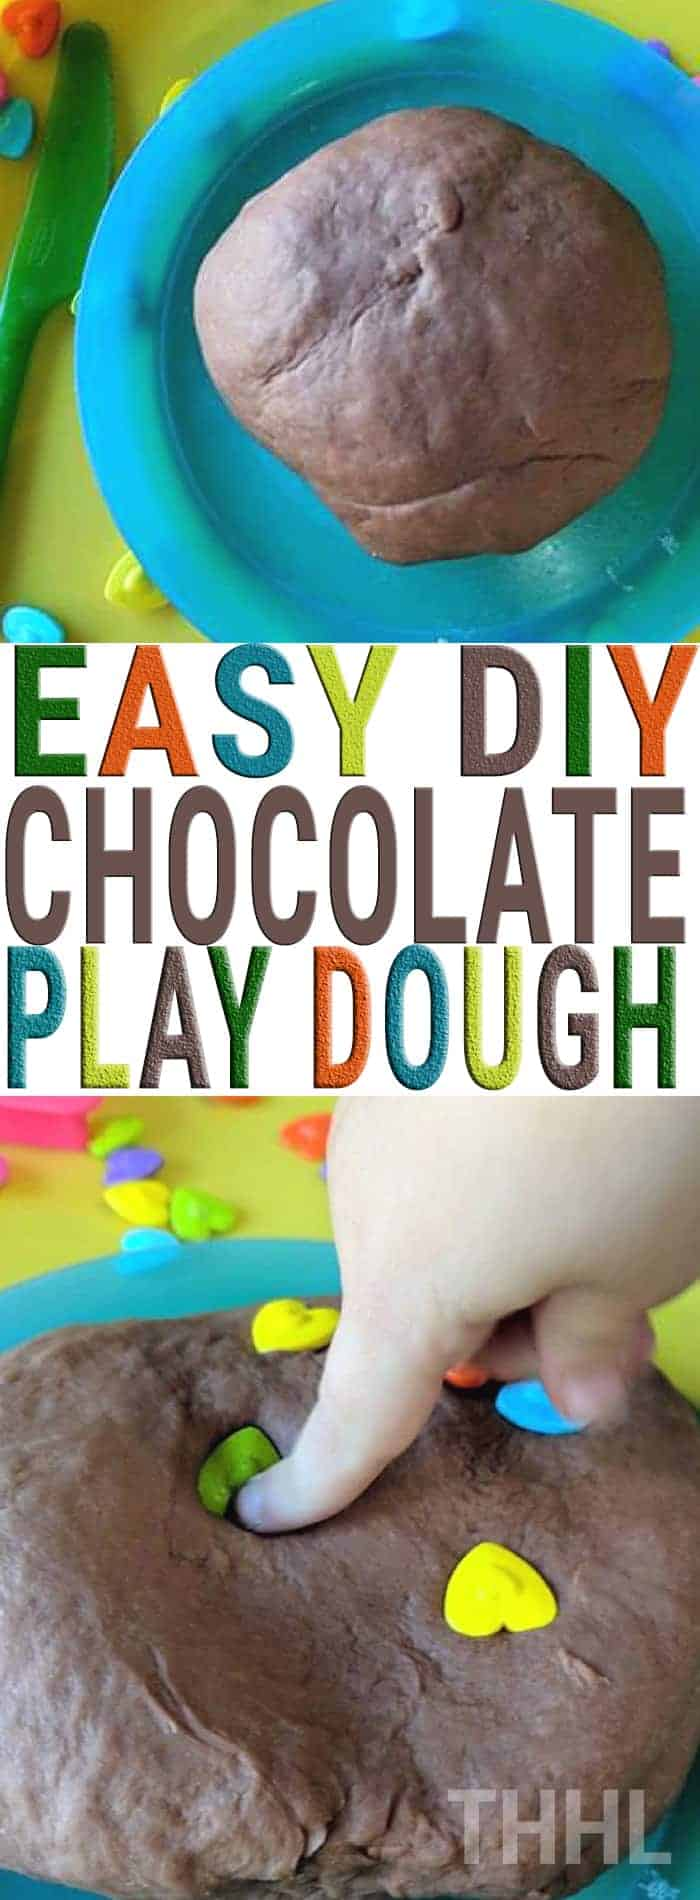 Learn how to create homemade easy DIY chocolate play dough today. So easy to make only five ingredients and the best part you don't have to cook anything! The ingredients you already have in your home.